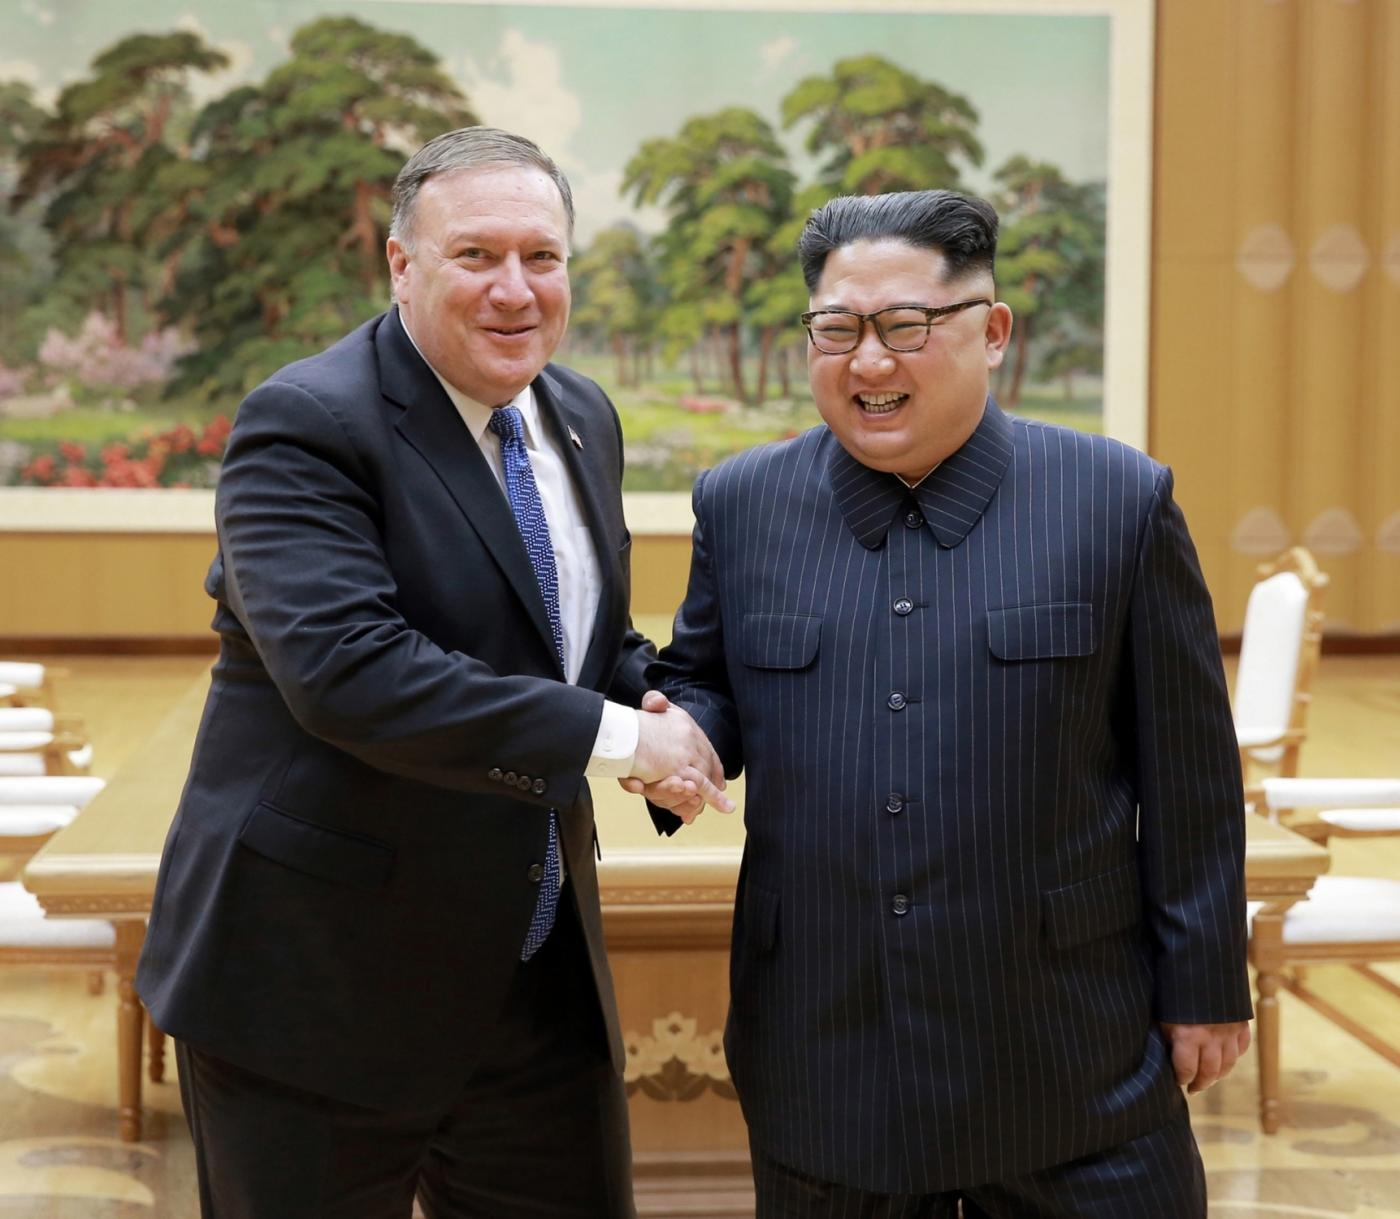 PYONGYANG, May 10, 2018 (Xinhua) -- Photo provided by the Korean Central News Agency (KCNA) on May 10, 2018 shows Kim Jong Un (R), top leader of the Democratic People's Republic of Korea (DPRK), shaking hands with visiting U.S. Secretary of State Mike Pompeo on May 9, 2018. Kim Jong Un expressed confidence that his upcoming summit meeting with U.S. President Donald Trump would be a historic one. (Xinhua/KCNA/IANS) by .